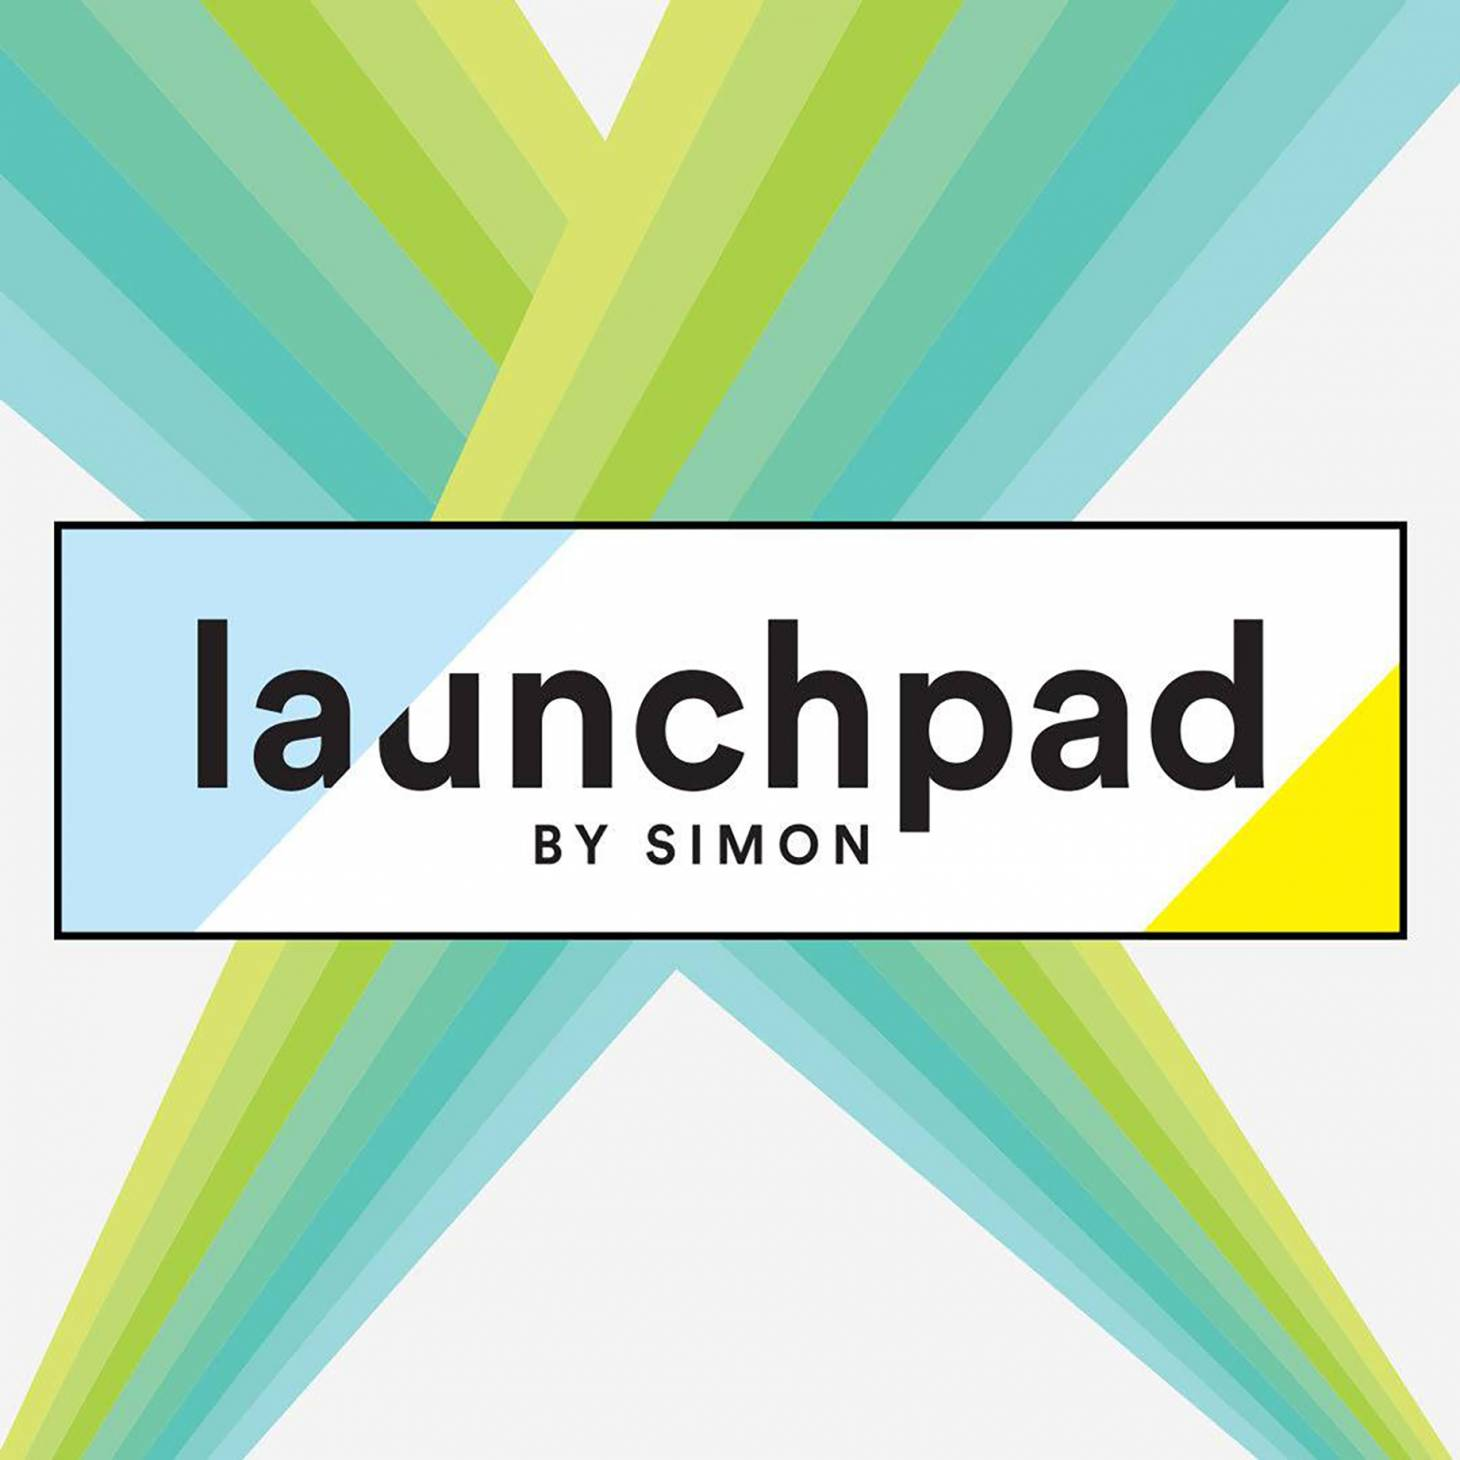 Simon Gives New Brands An Entry Point To Its Malls Via Launchpad